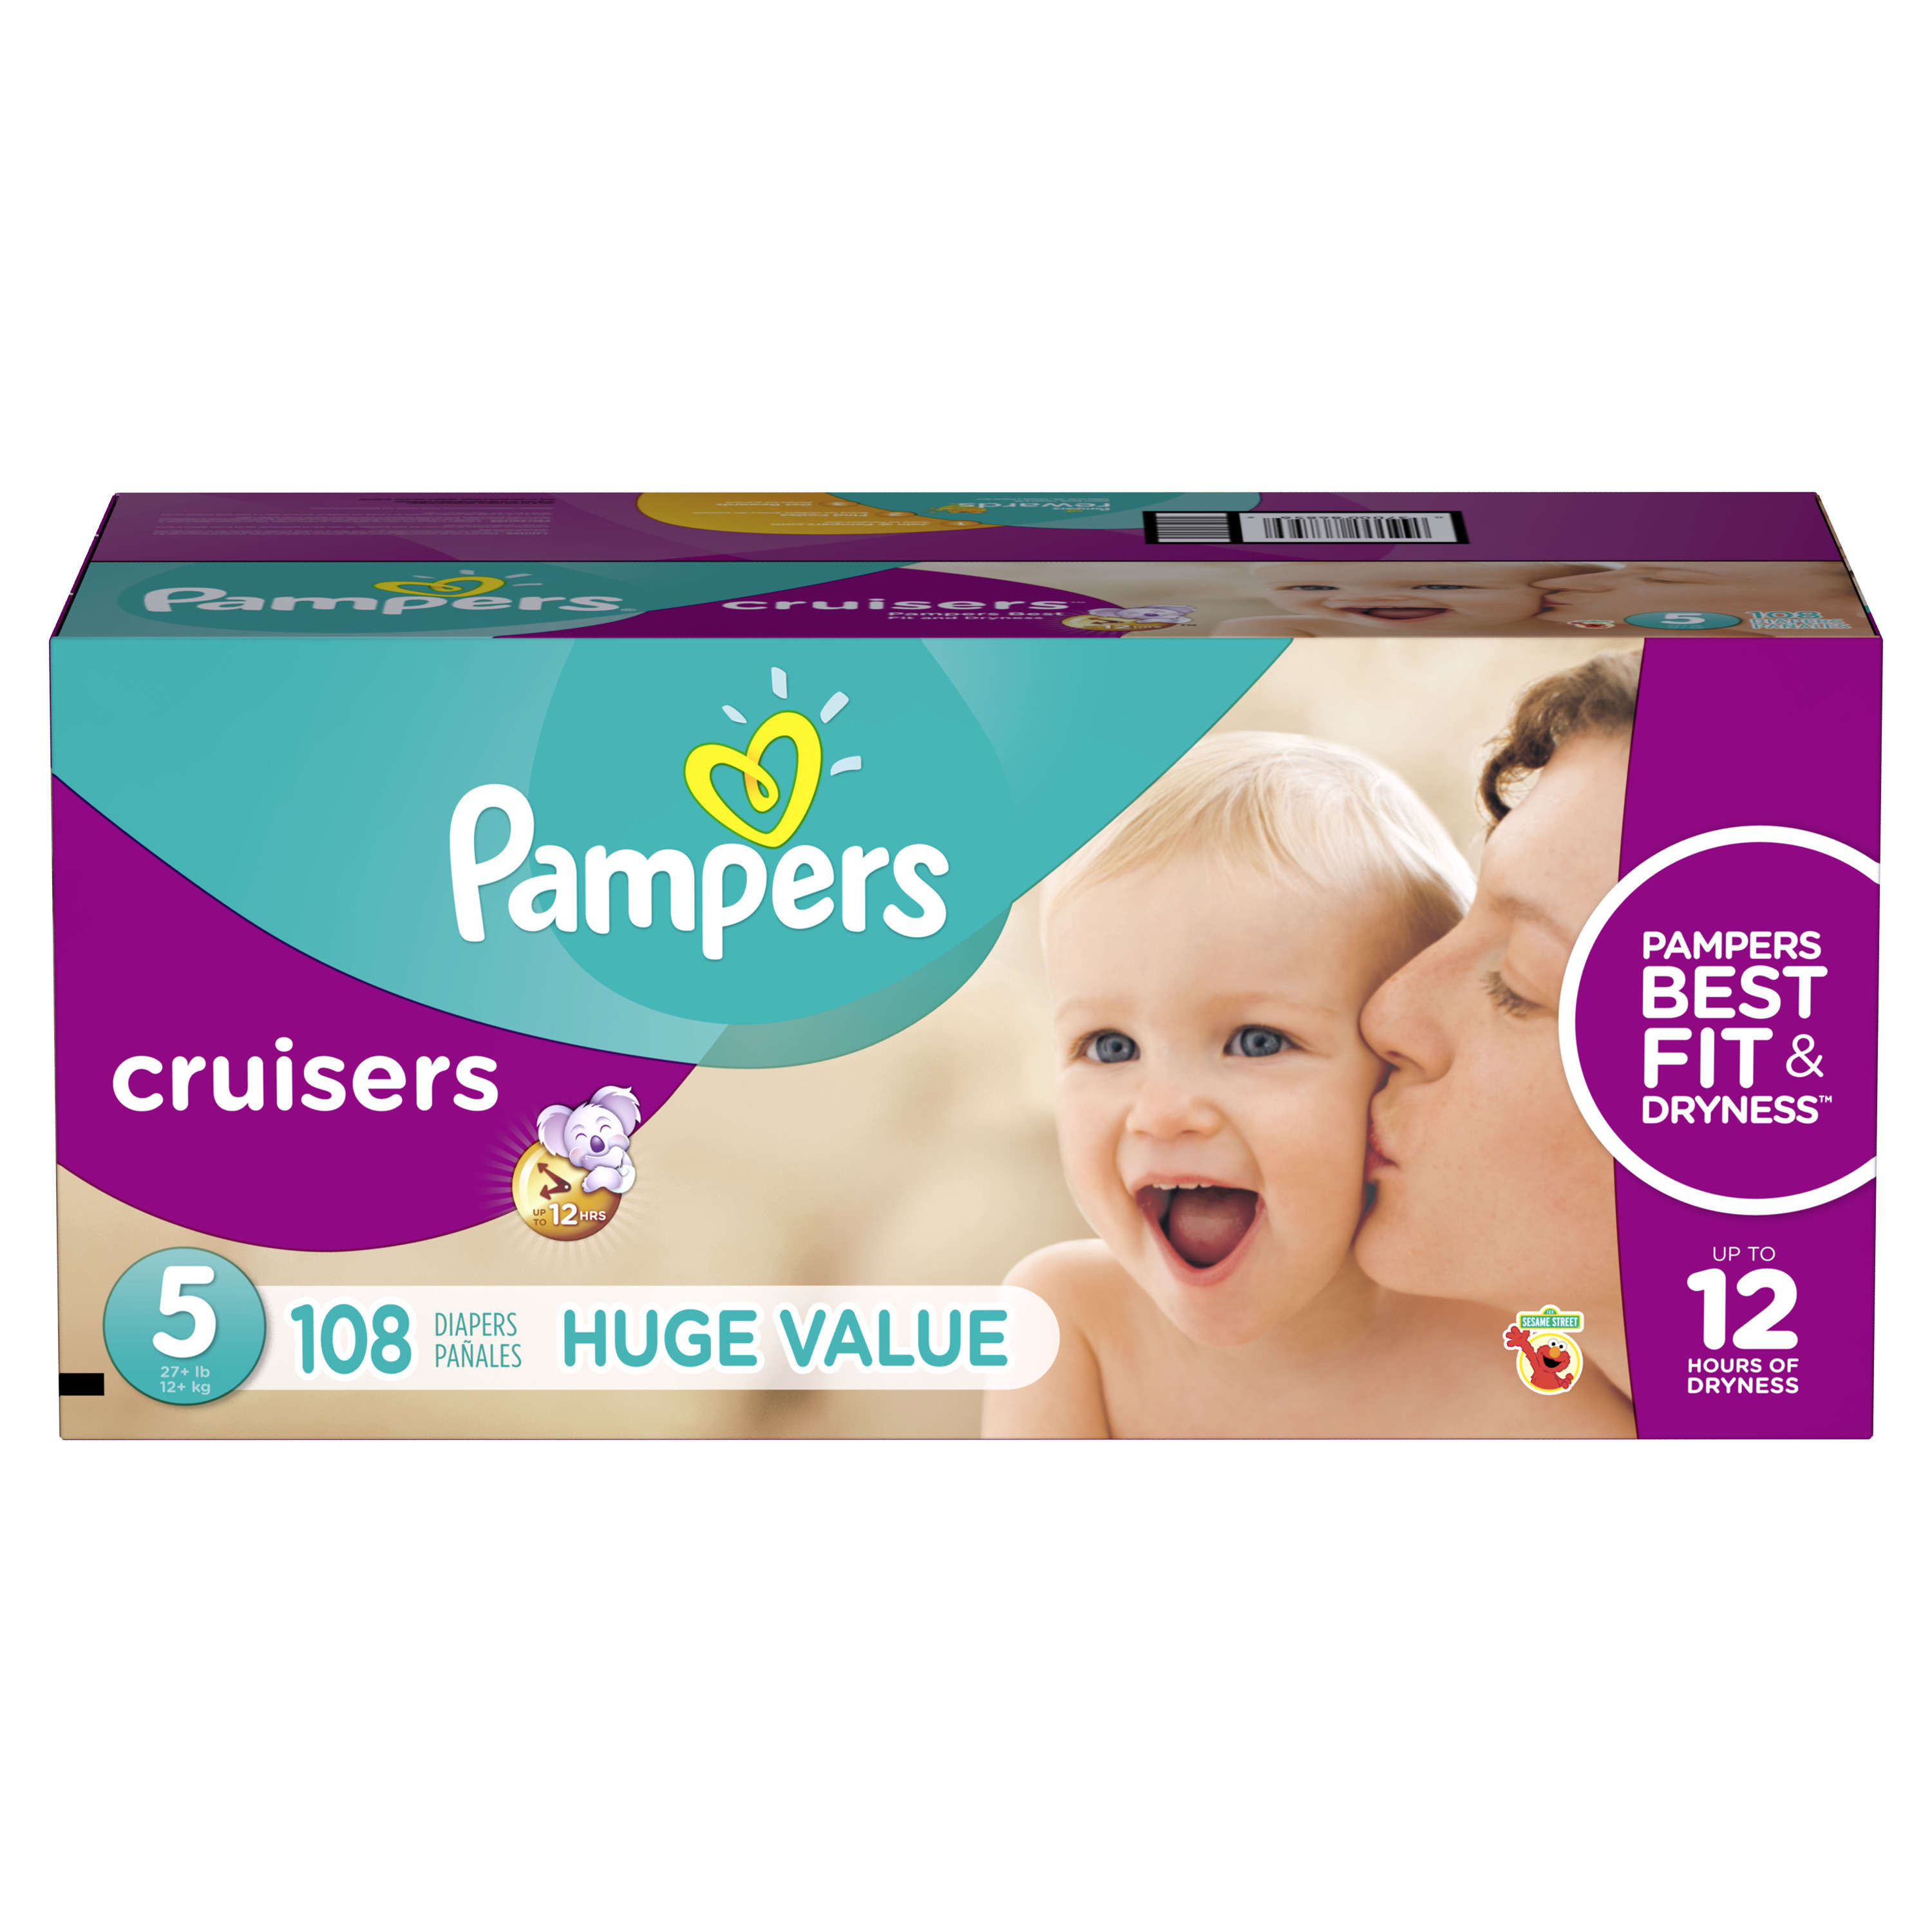 Pampers Cruisers Diapers, Size 5, 108 Diapers by Pampers